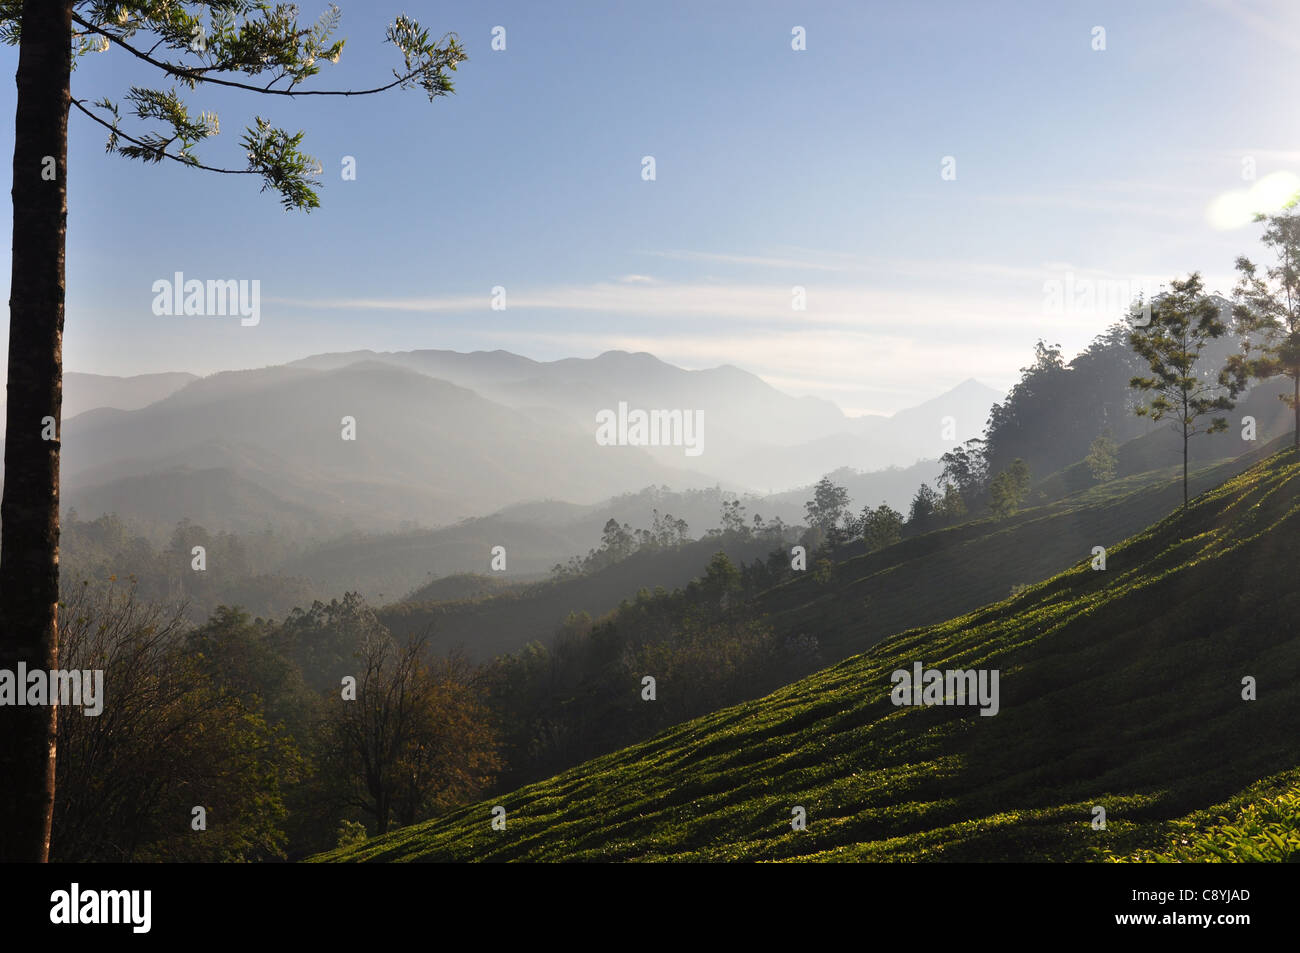 Mist lazily floats away giving way to the morning sunshine in the hills of Munnar - Stock Image